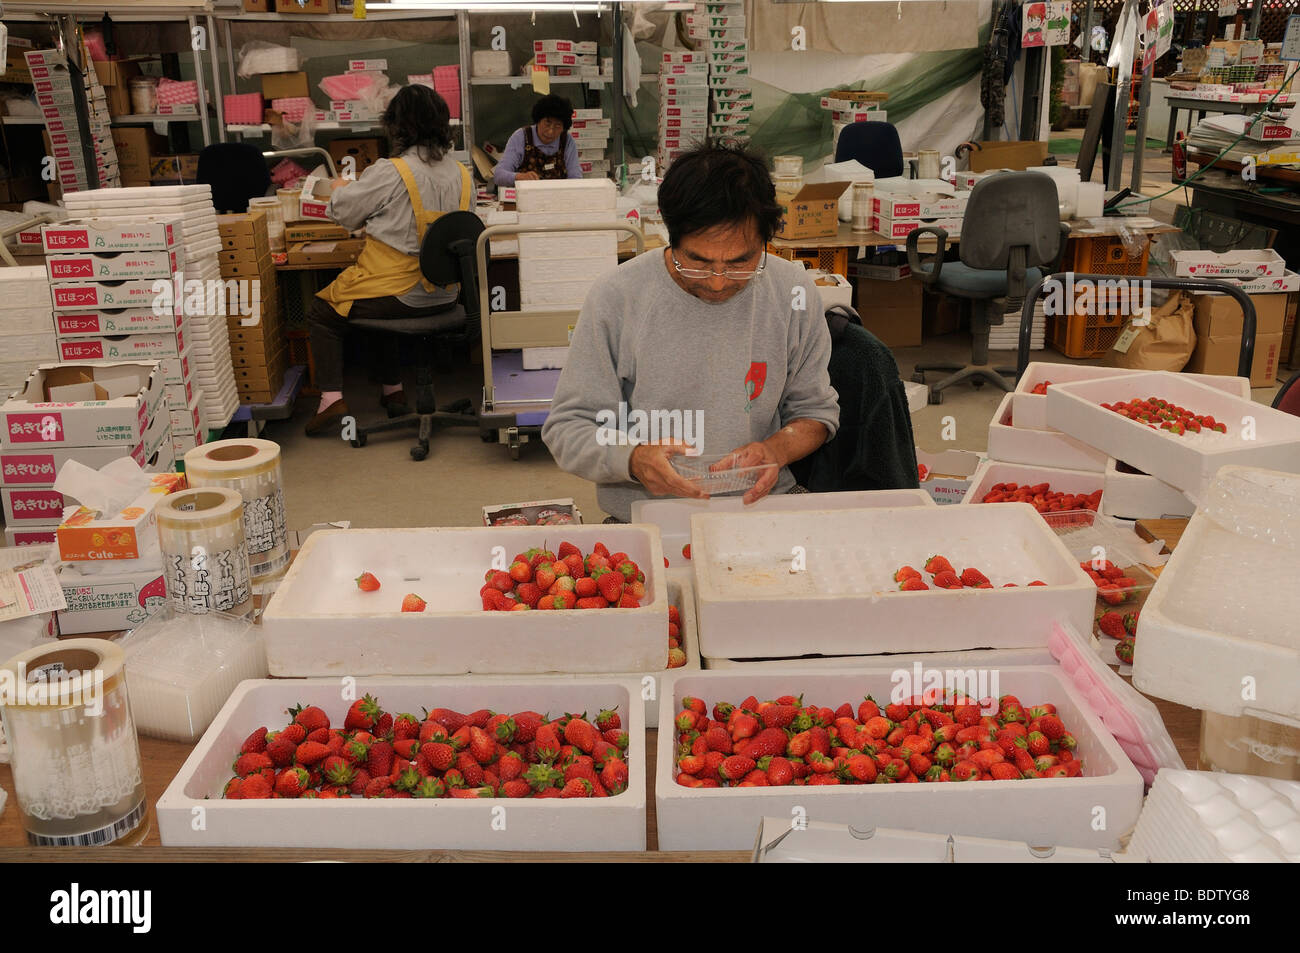 Strawberry plantation, strawberries are individually packaged for retail, Shizuoka Prefecture, Japan, Asia - Stock Image